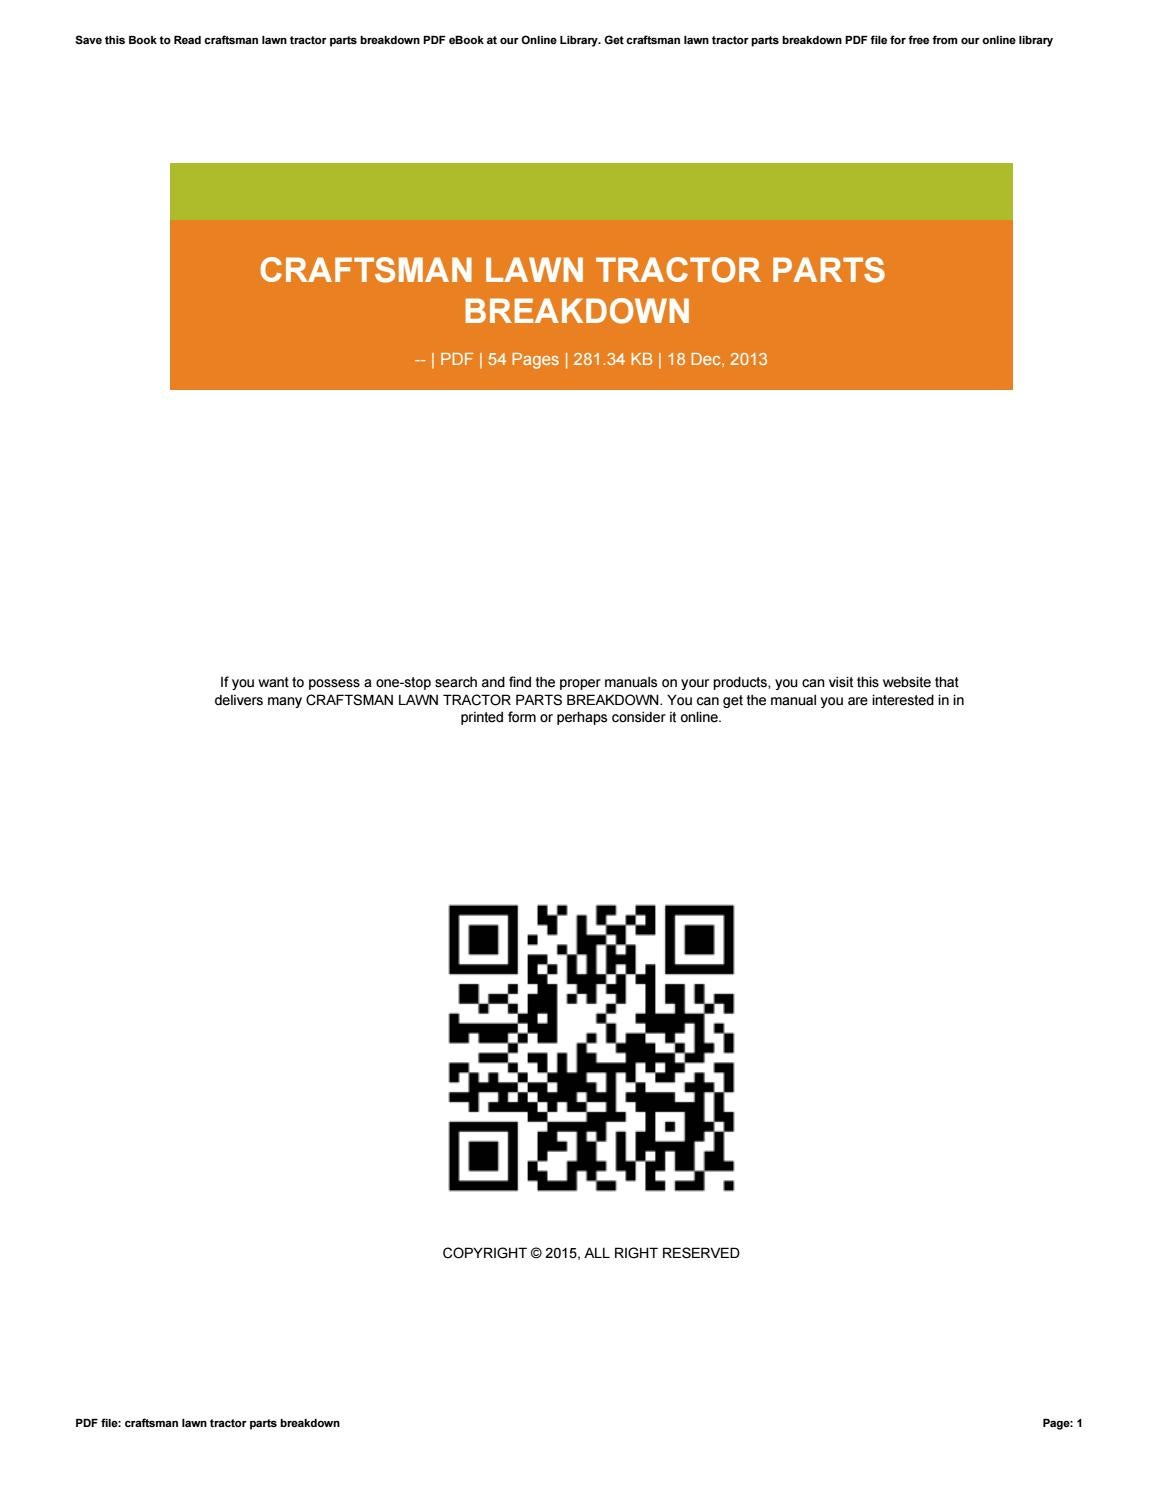 Craftsman Lawn Tractor Parts Breakdown By Anneengle3 Issuu Wiring Harness